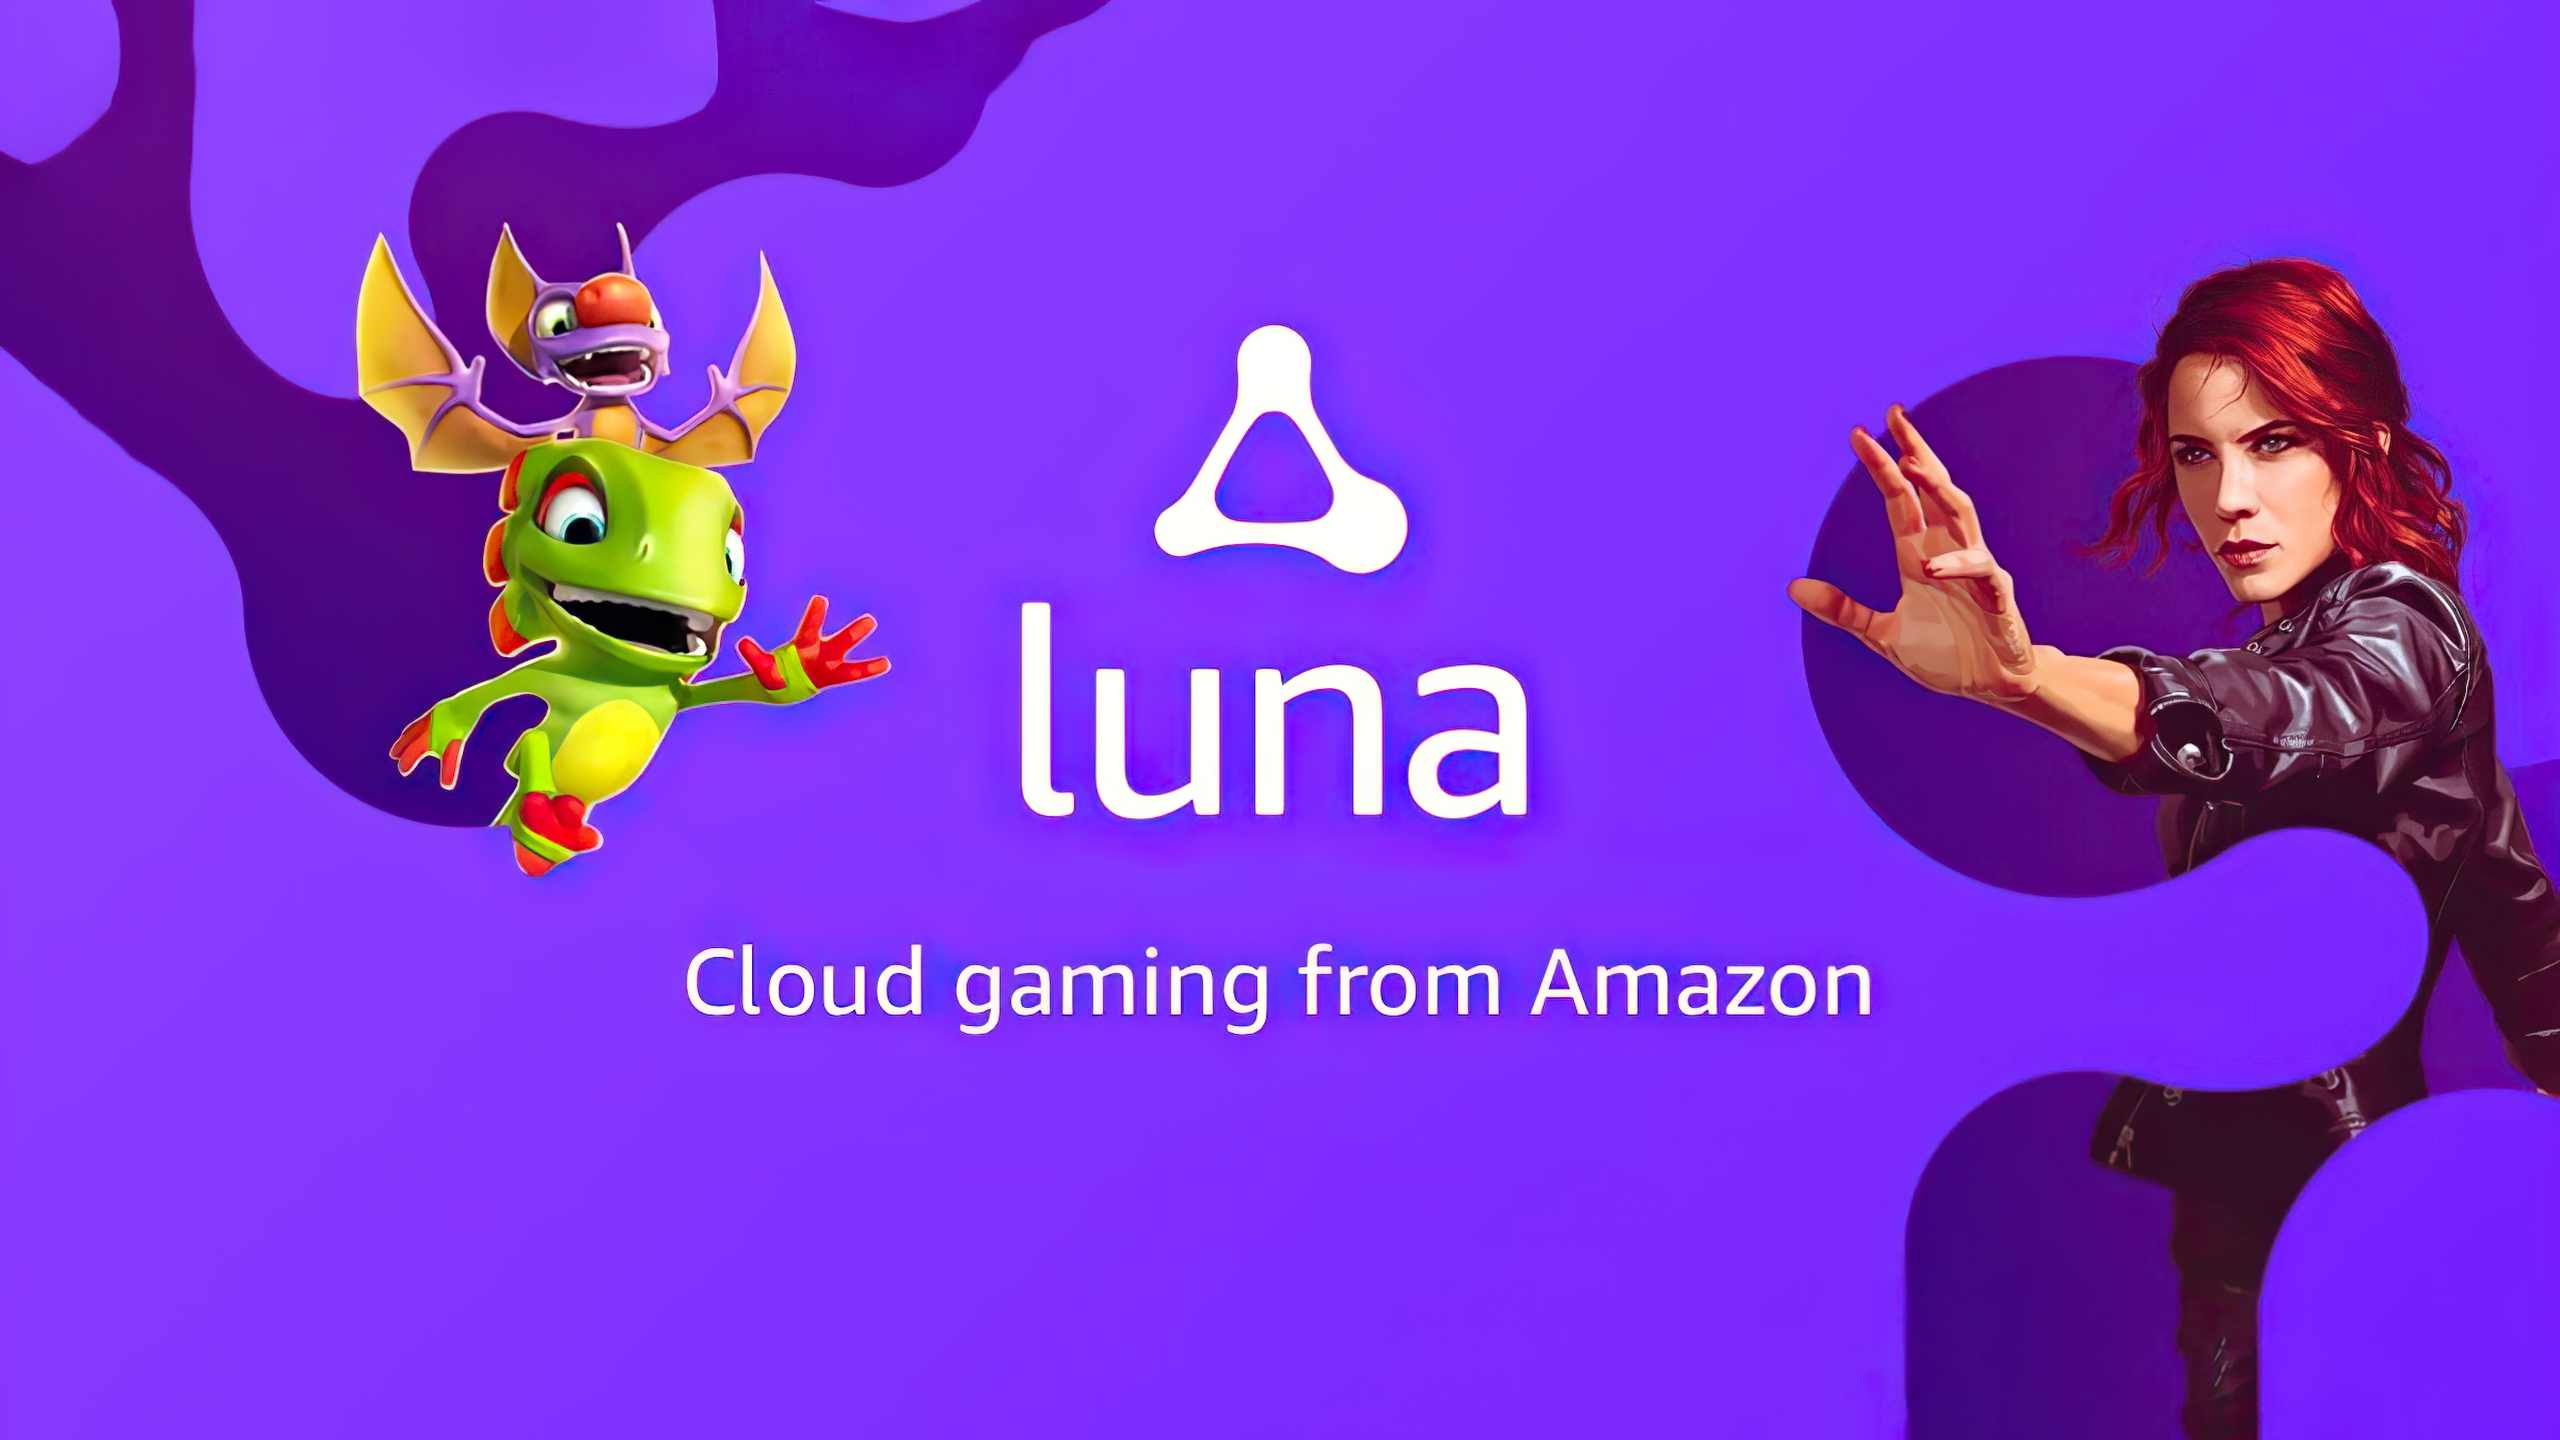 Arriva Luna la piattaforma di cloud gaming di Amazon